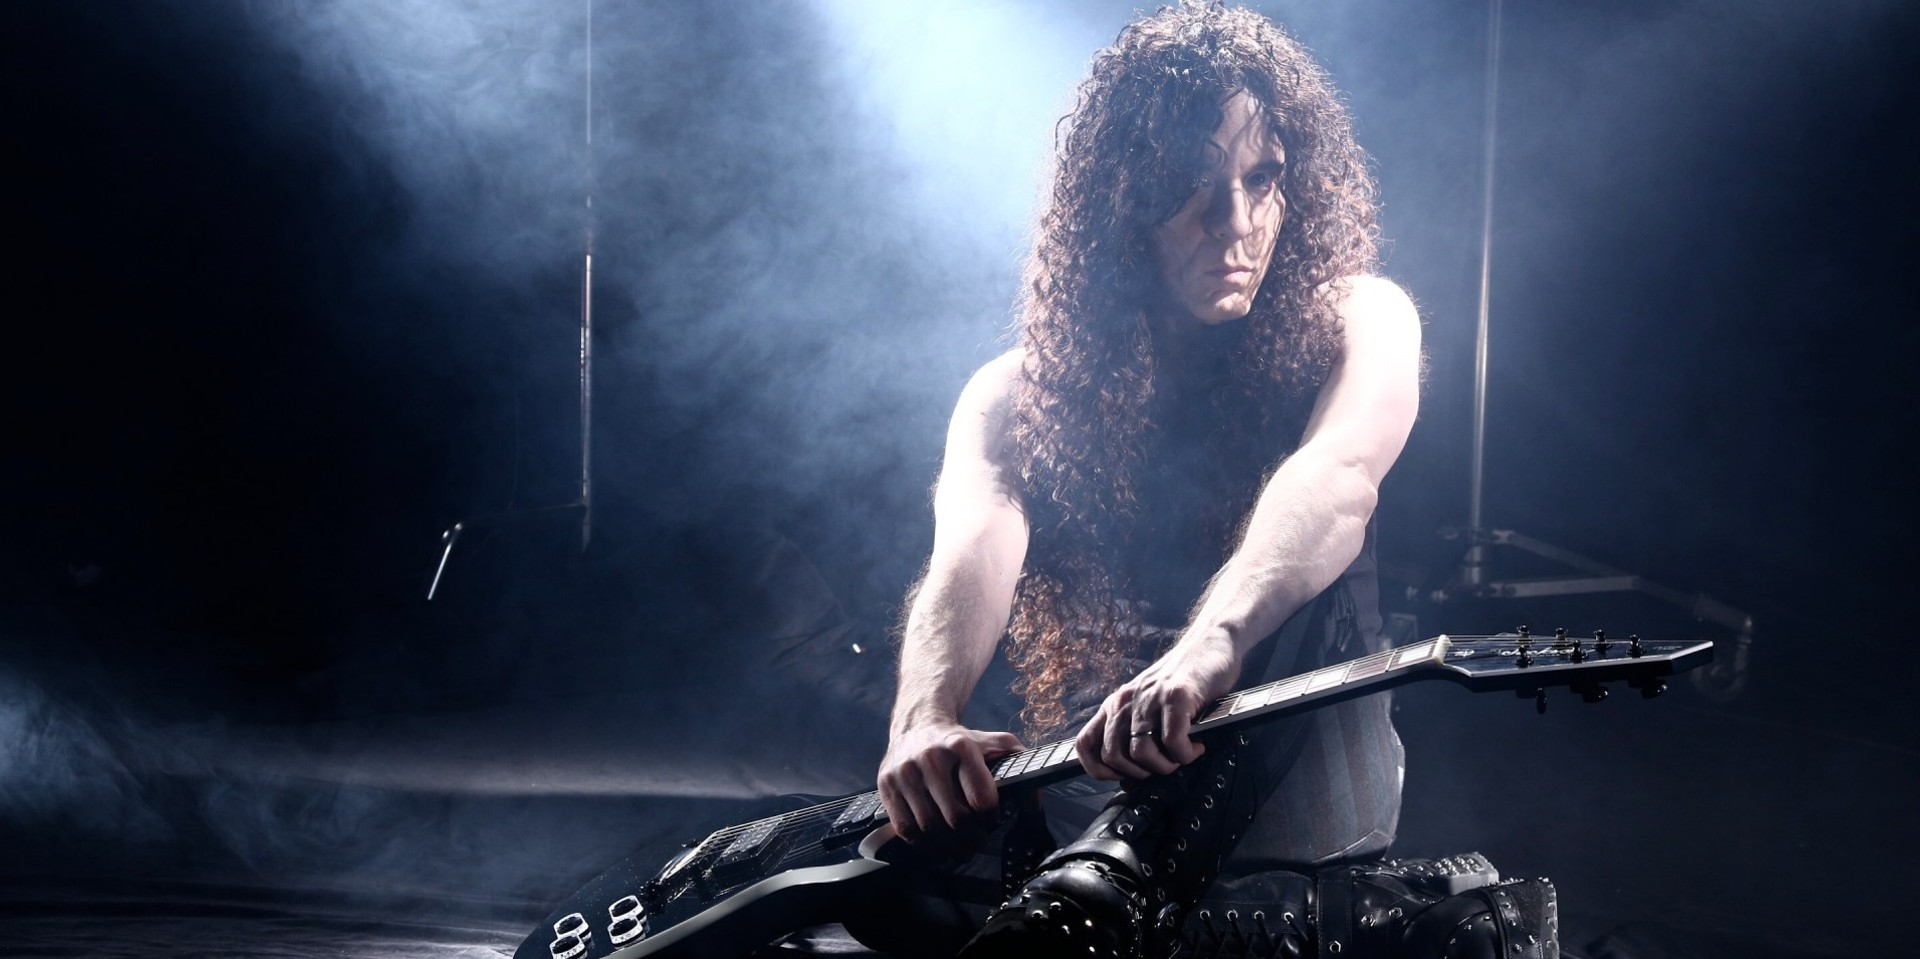 Marty Friedman to hold Guitar.com Masterclass in Singapore this November